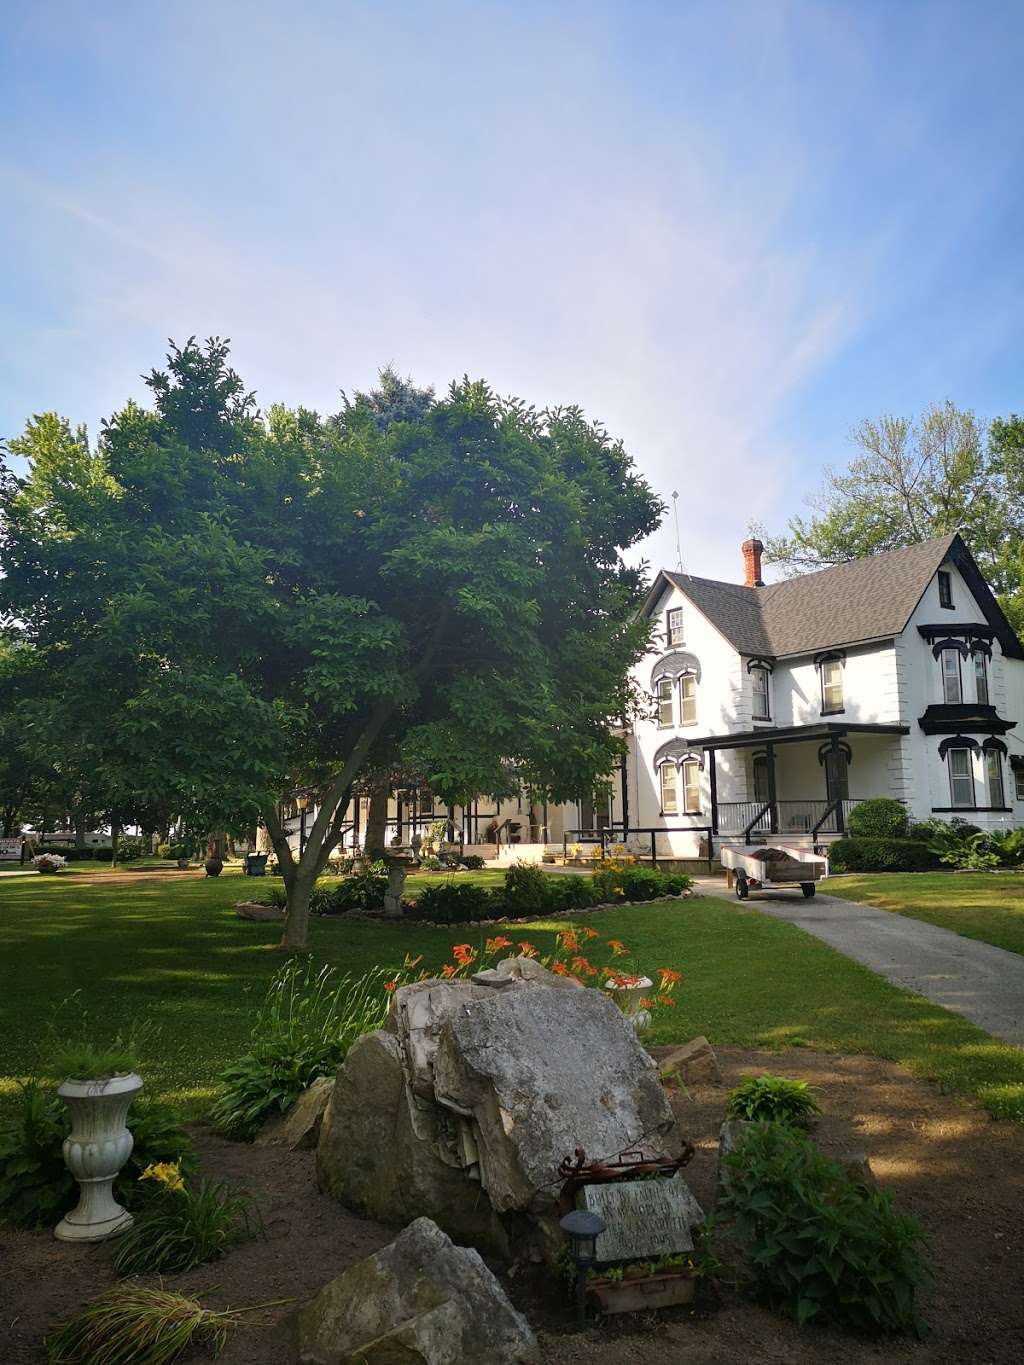 Ravine Cottages | lodging | 445 Essex County Rd 50, Harrow, ON N0R 1G0, Canada | 5197382620 OR +1 519-738-2620